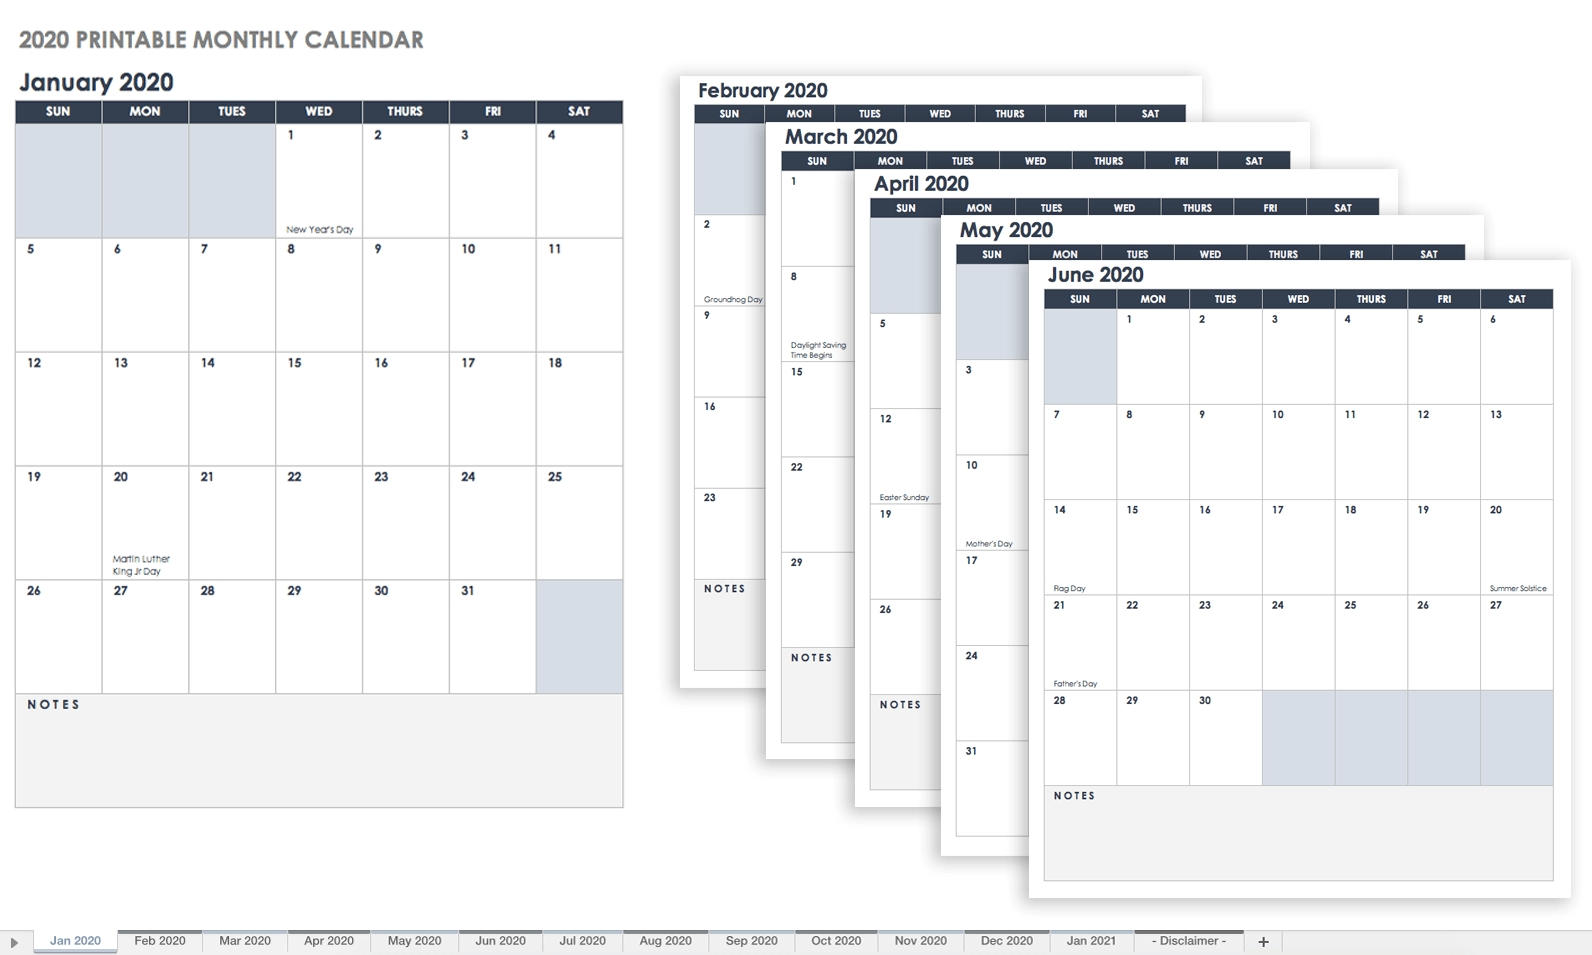 Free Blank Calendar Templates - Smartsheet throughout Blank Lined Weekly Printable Calendar